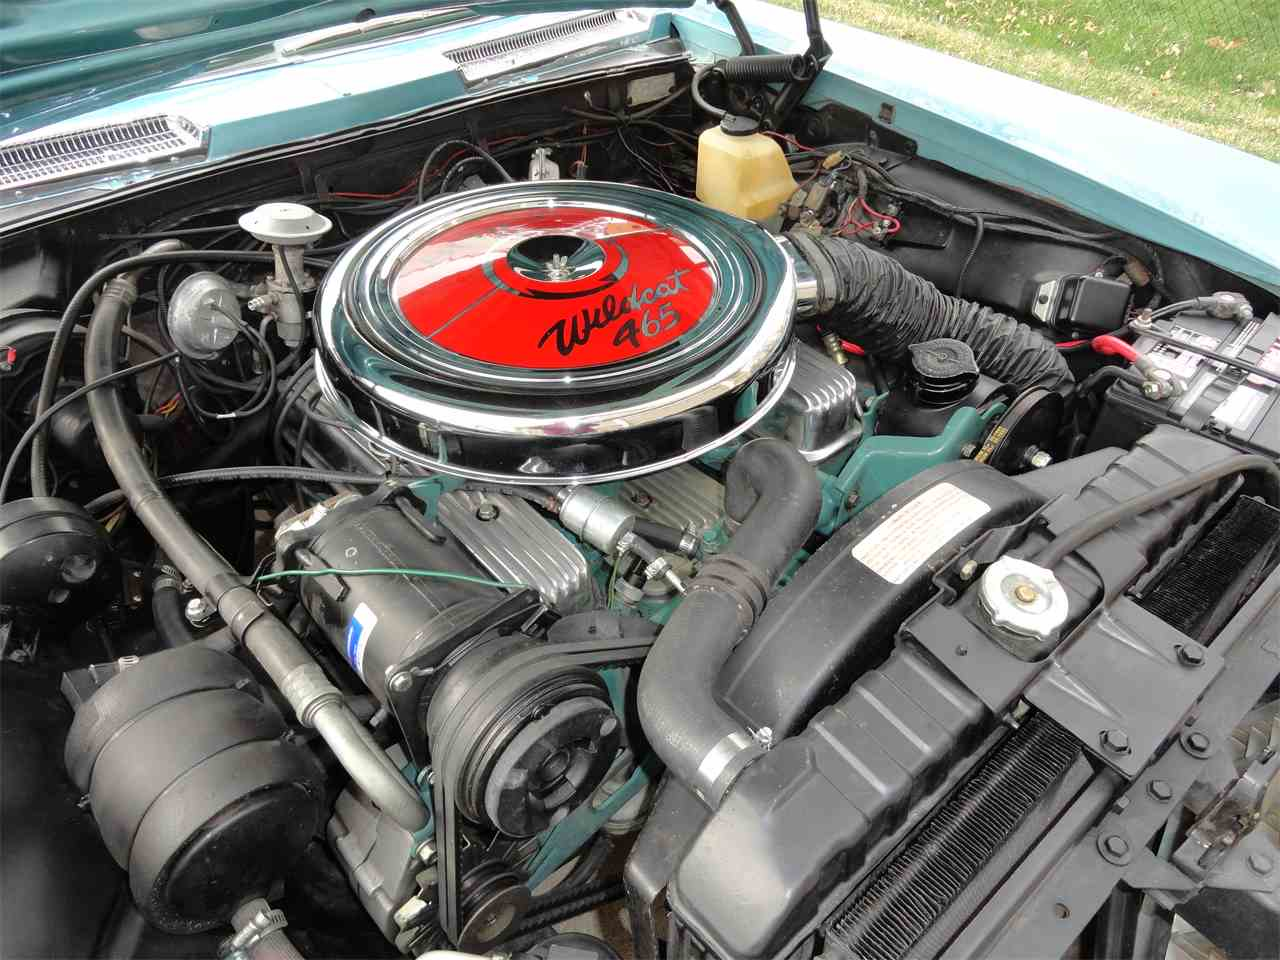 Classic Car Shows In Denver Today